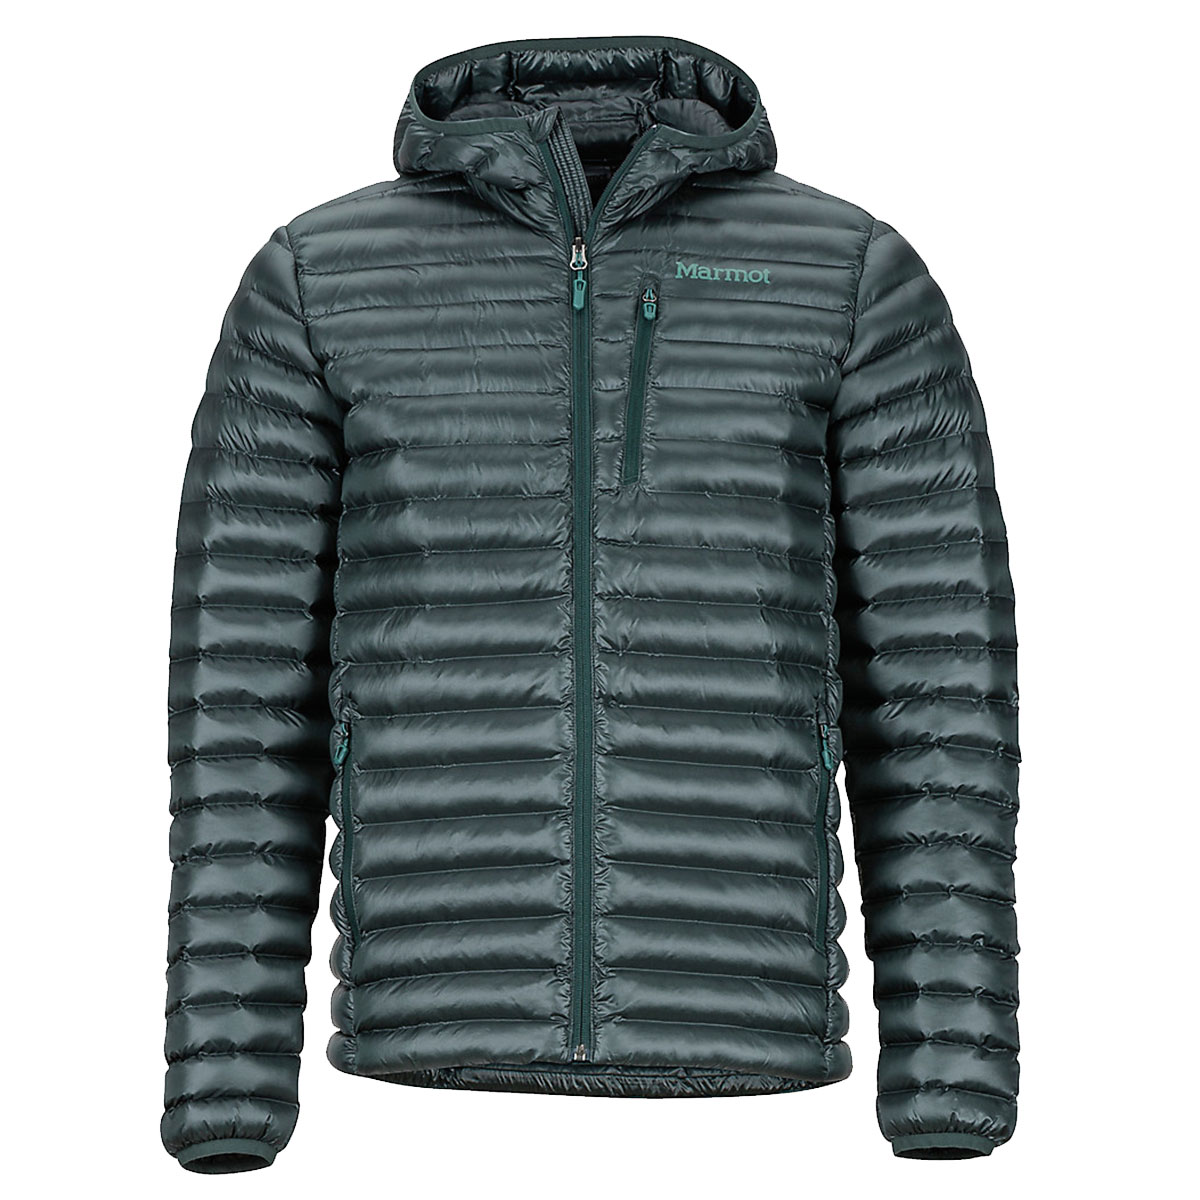 Marmot Men's Avant Featherless Hoodie - Green, XL